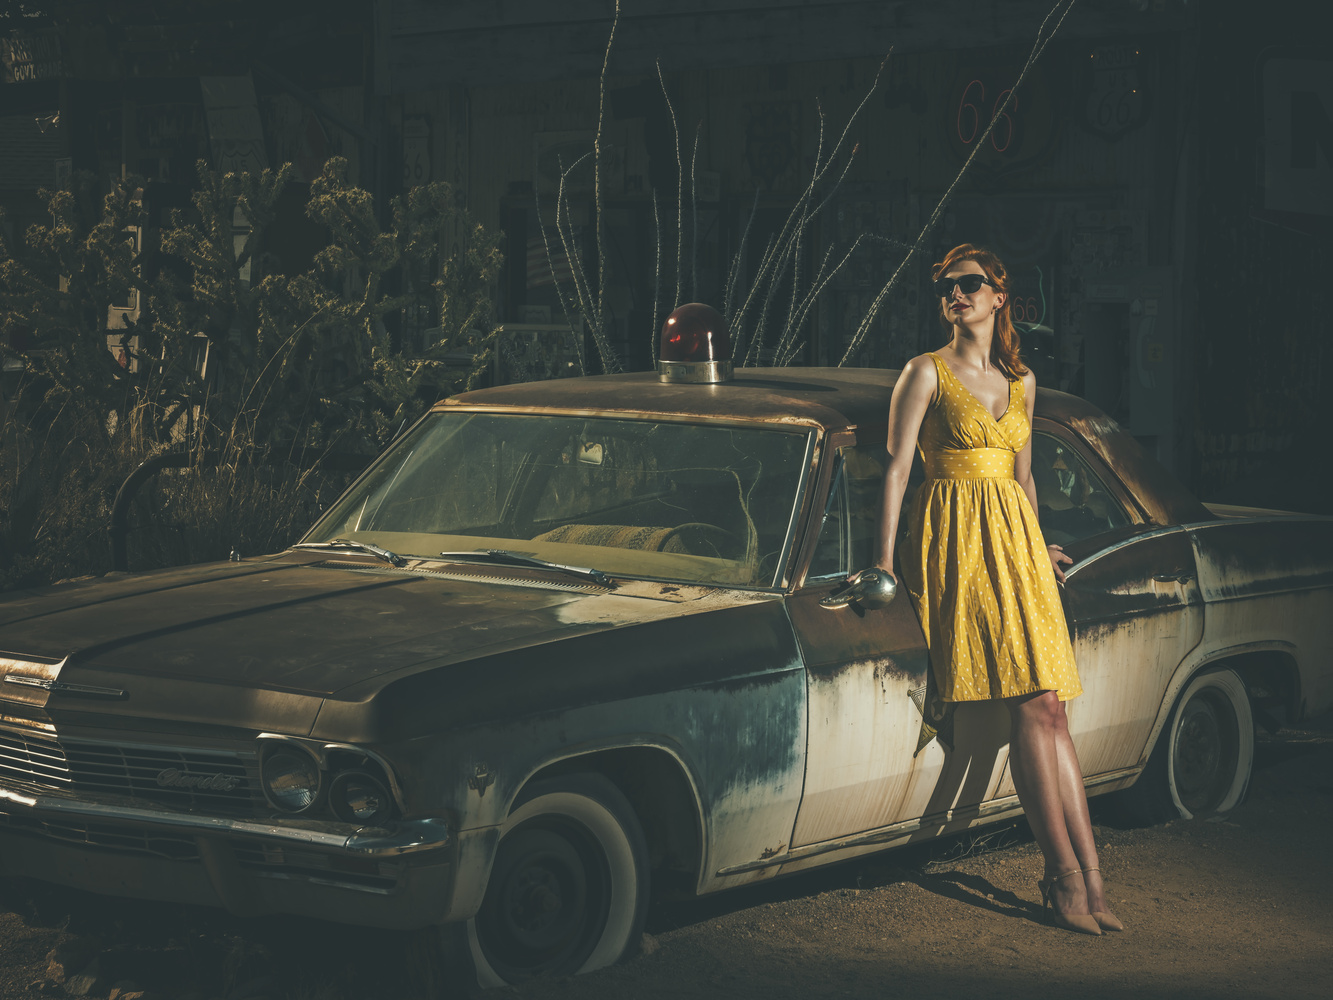 Route 66 II by Trey Amick